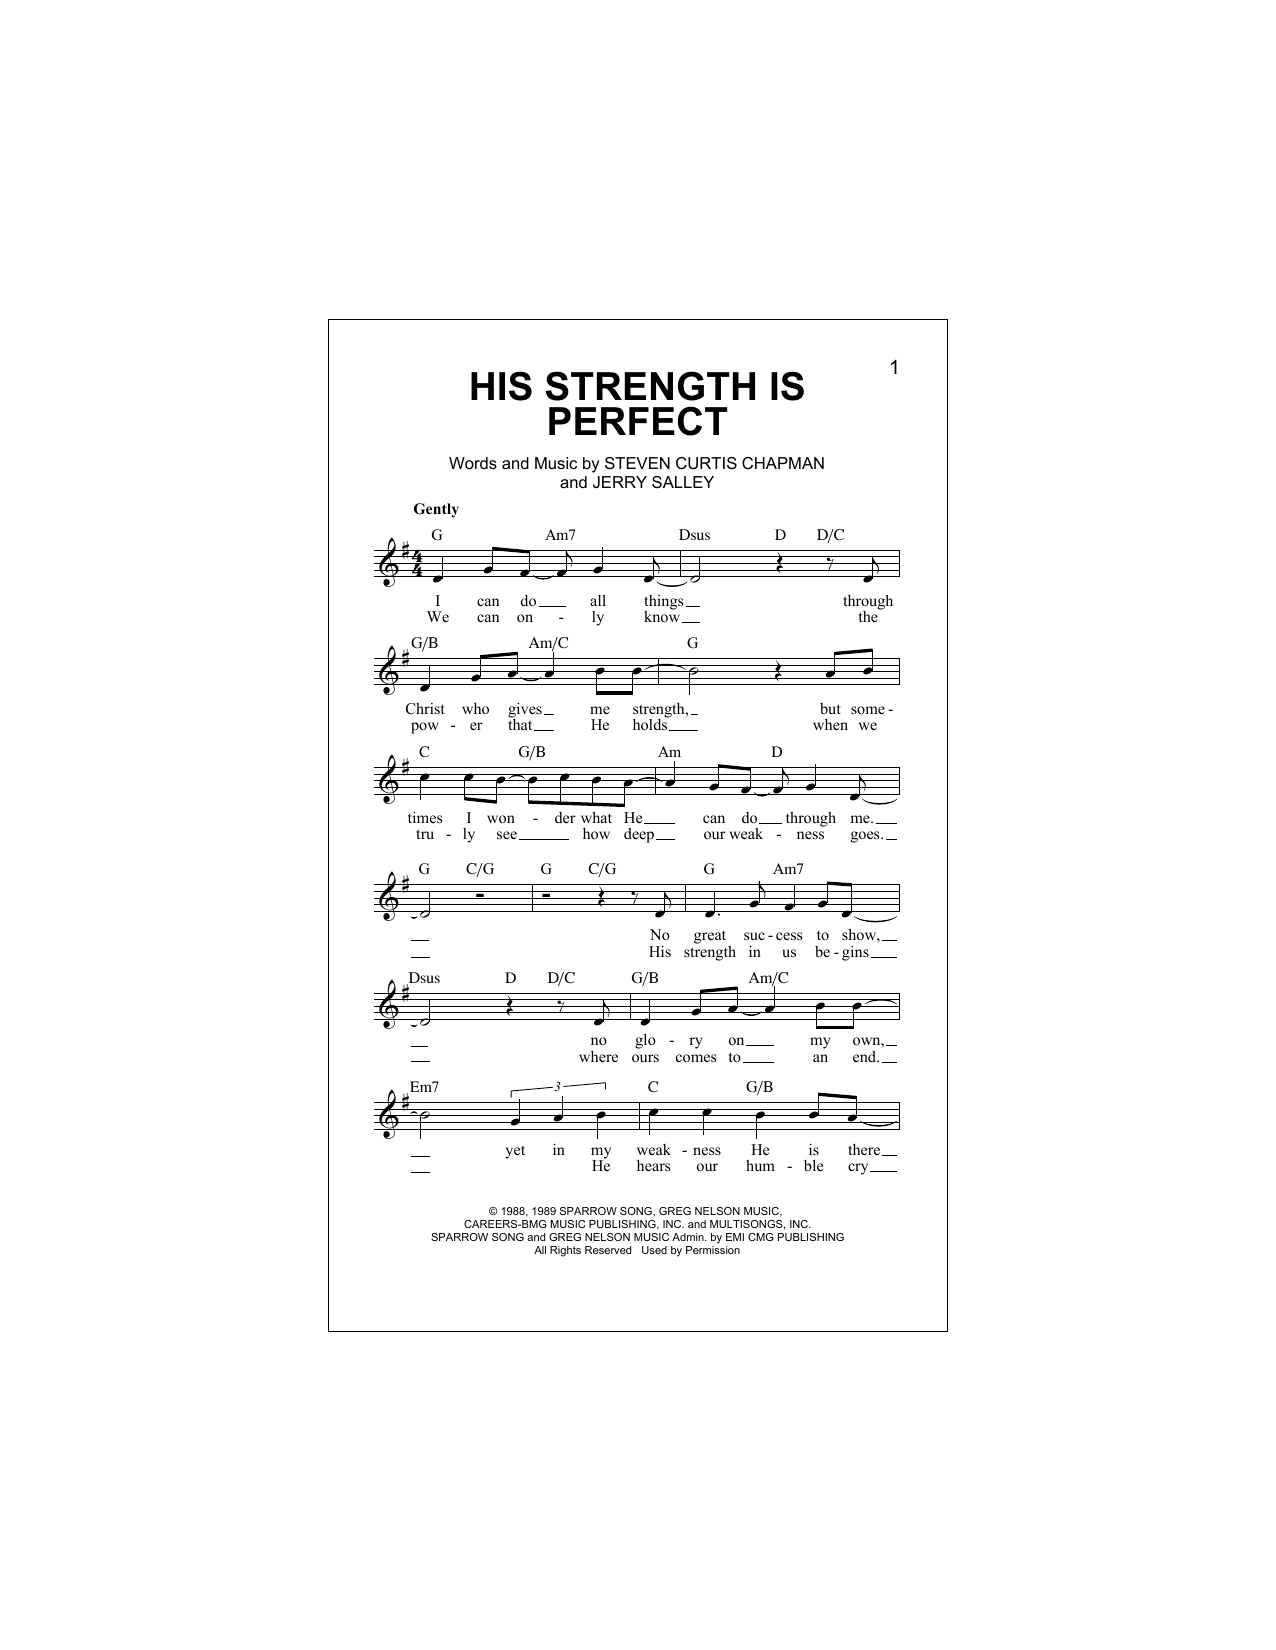 Steven Curtis Chapman 'His Strength Is Perfect' Sheet Music Notes, Chords |  Download Printable Melody Line, Lyrics & Chords - SKU: 195054